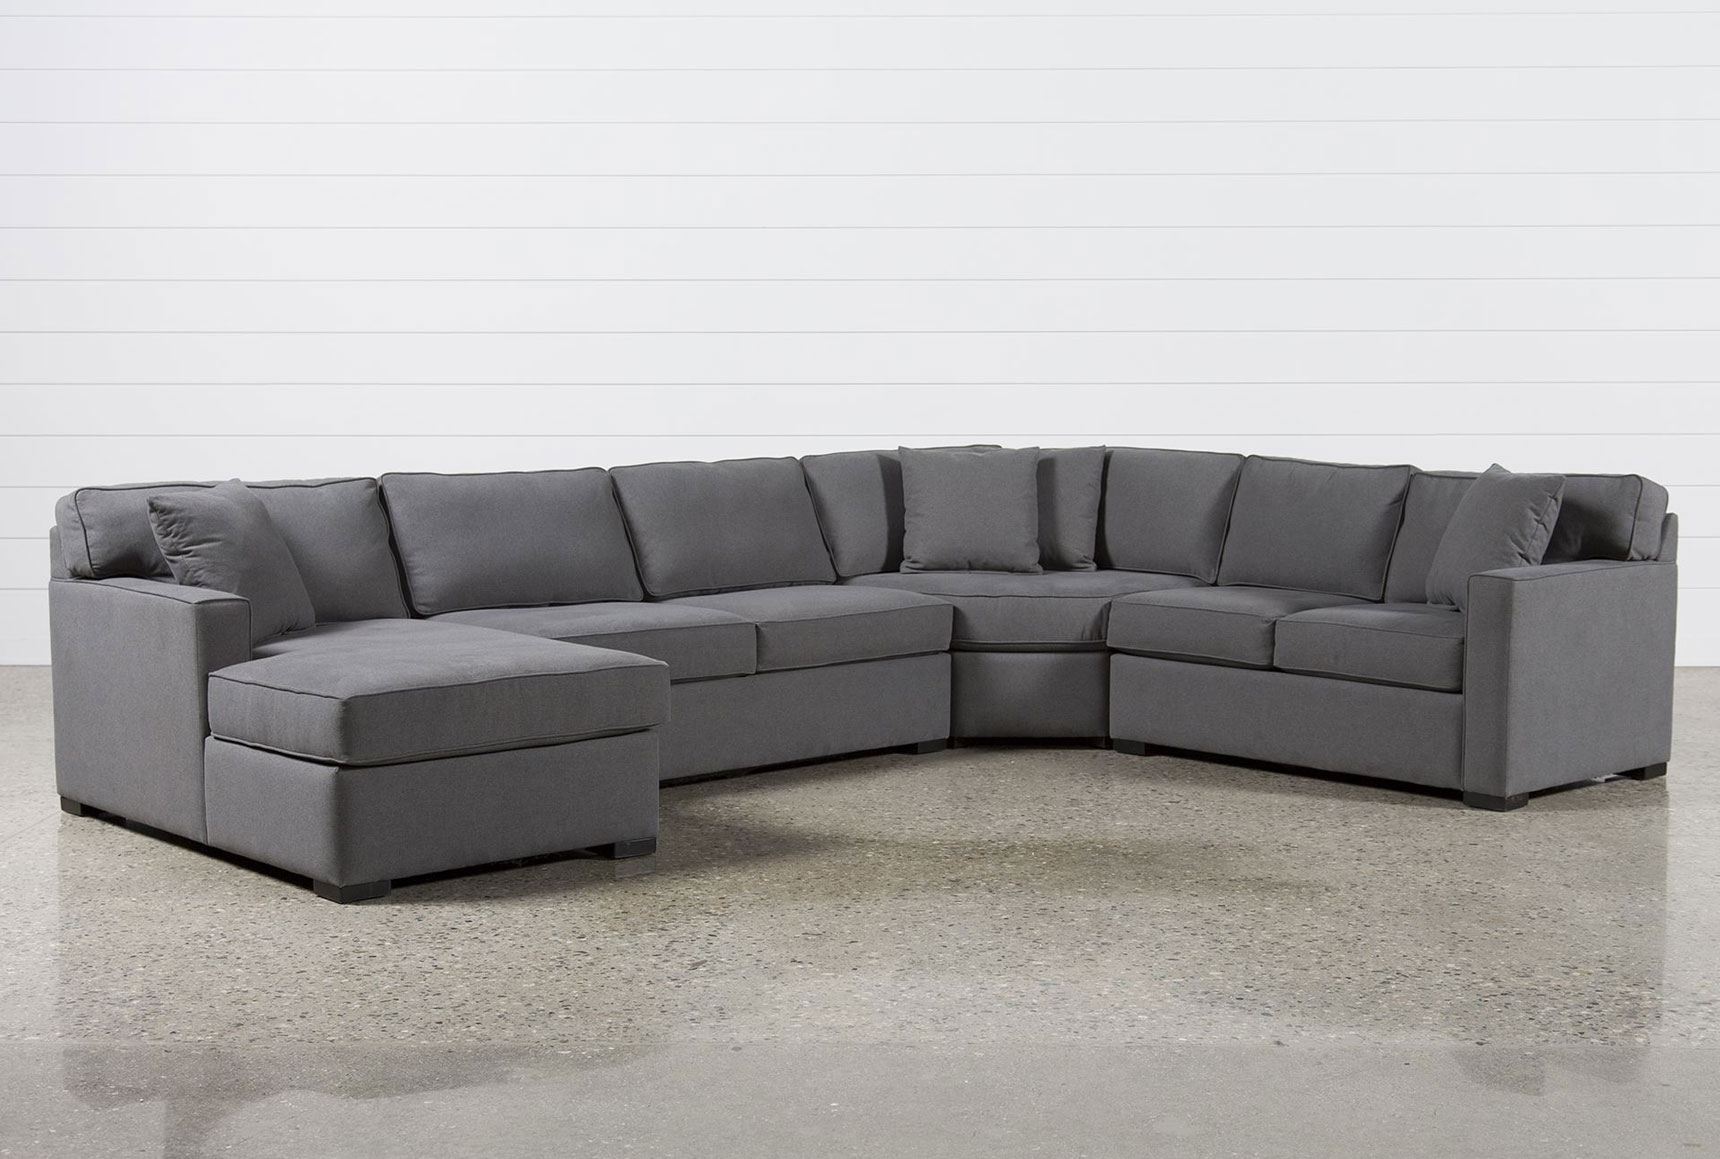 Everett Wa Sectional Sofas In Famous Sectional Sofa: Recommended 45 Degree Sectional Sofa 135 Degree (View 1 of 20)